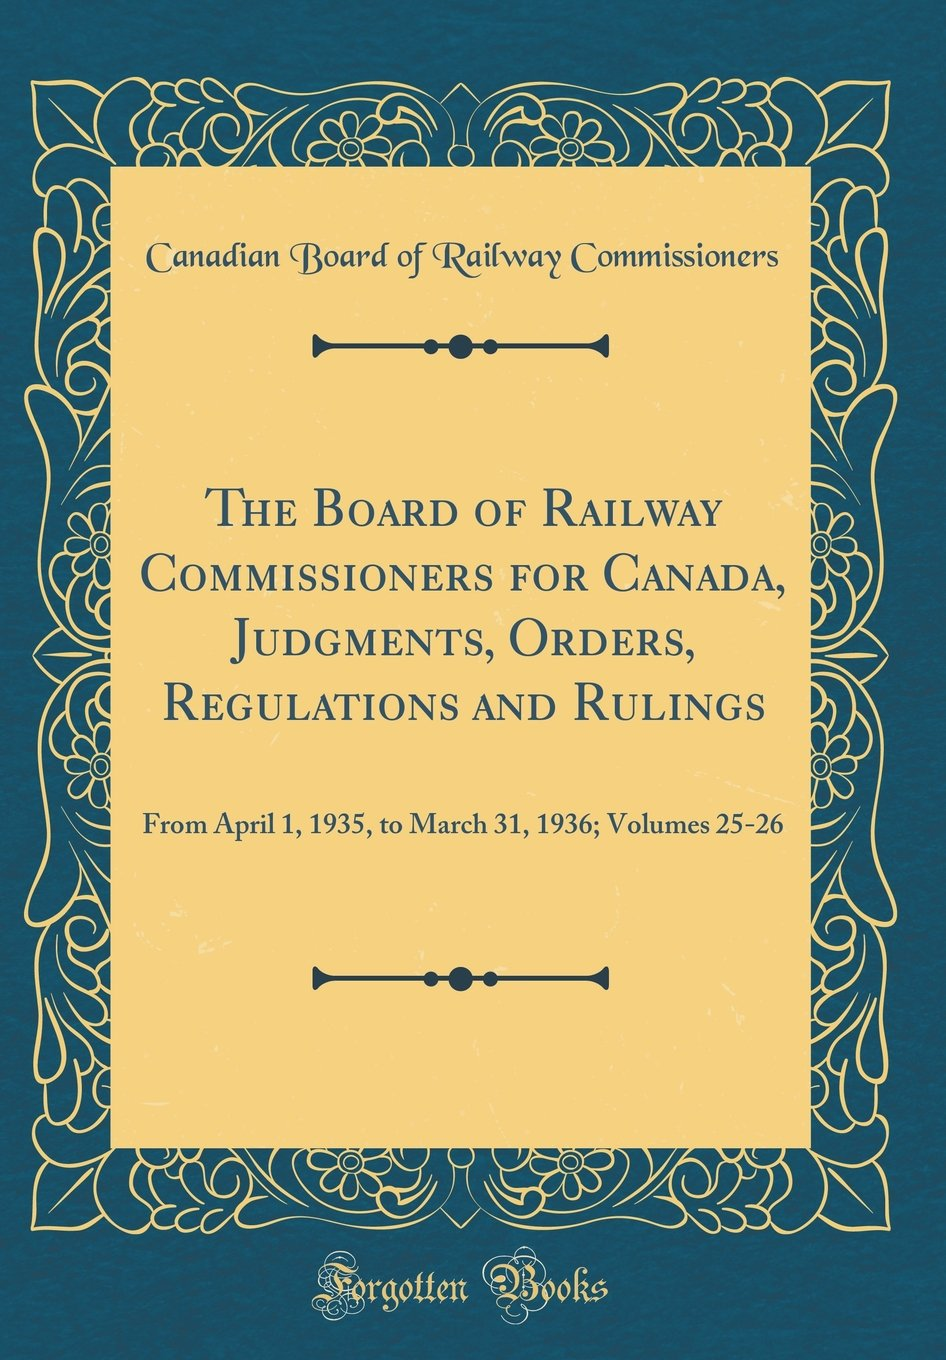 The Board of Railway Commissioners for Canada, Judgments, Orders, Regulations and Rulings: From April 1, 1935, to March 31, 1936; Volumes 25-26 (Classic Reprint) PDF